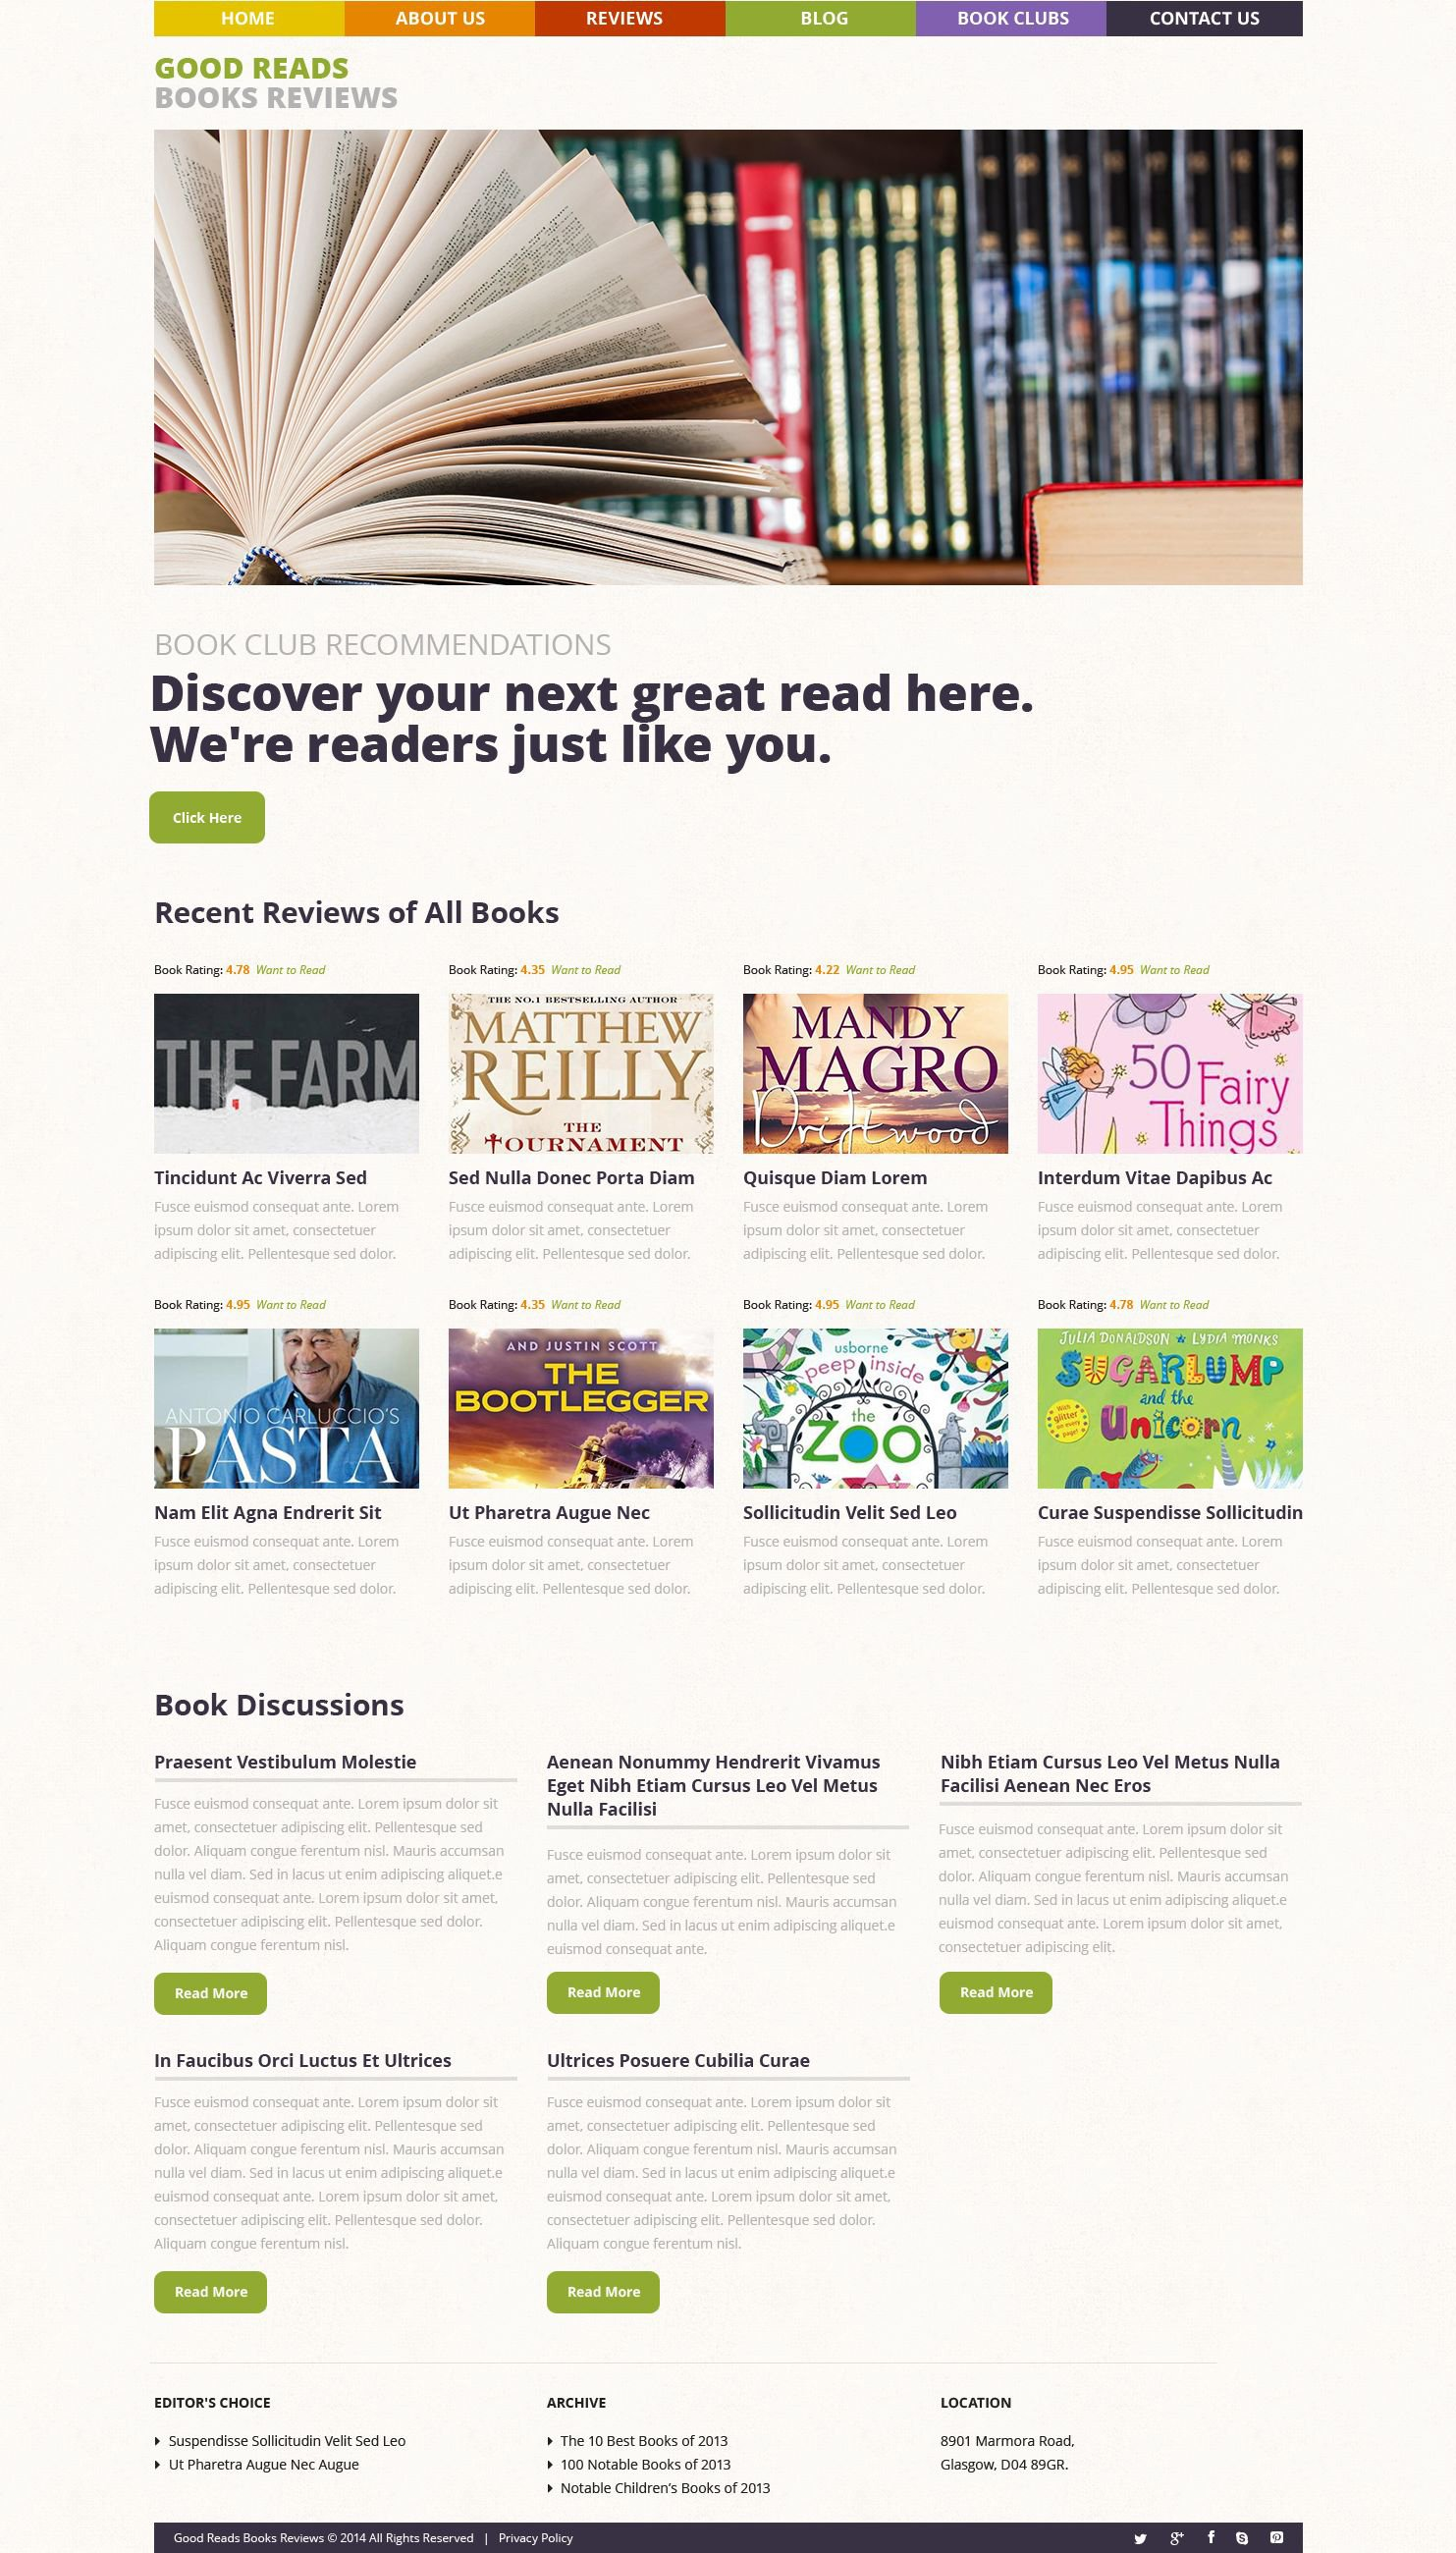 Books Reviews WordPress Theme - screenshot